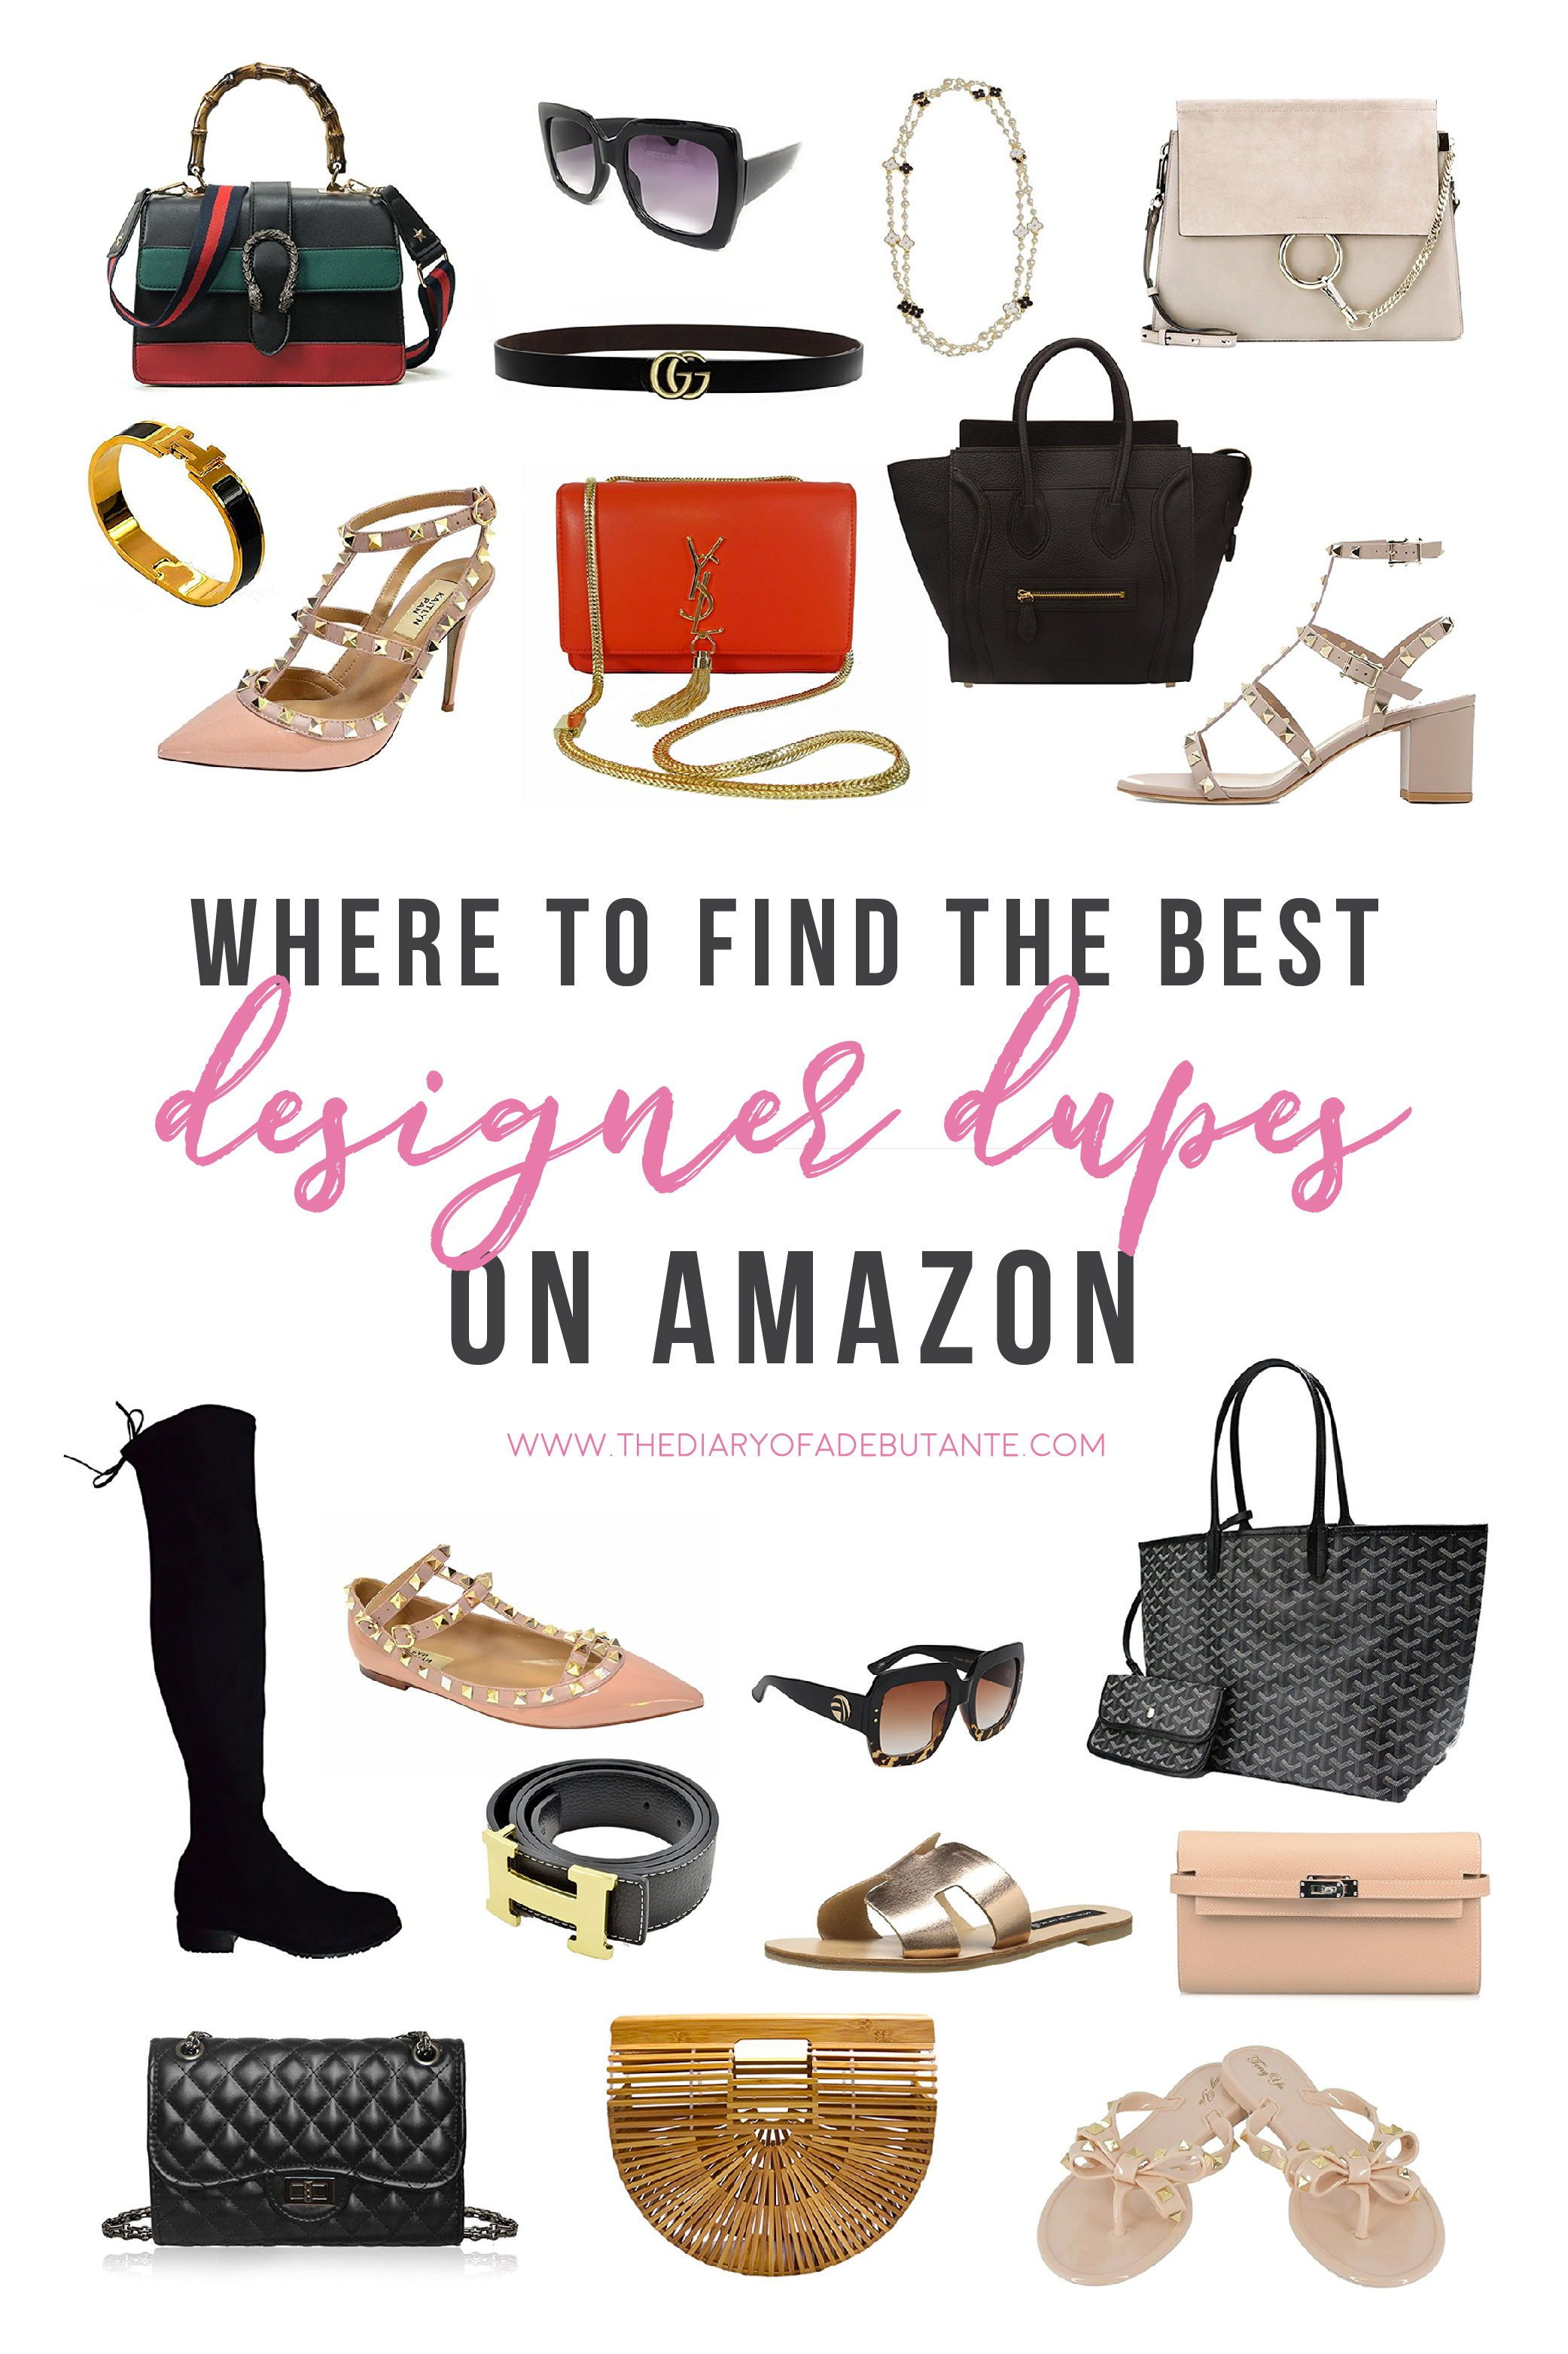 34d0a3a73b All of the best designer dupes on Amazon rounded up in one place! If you